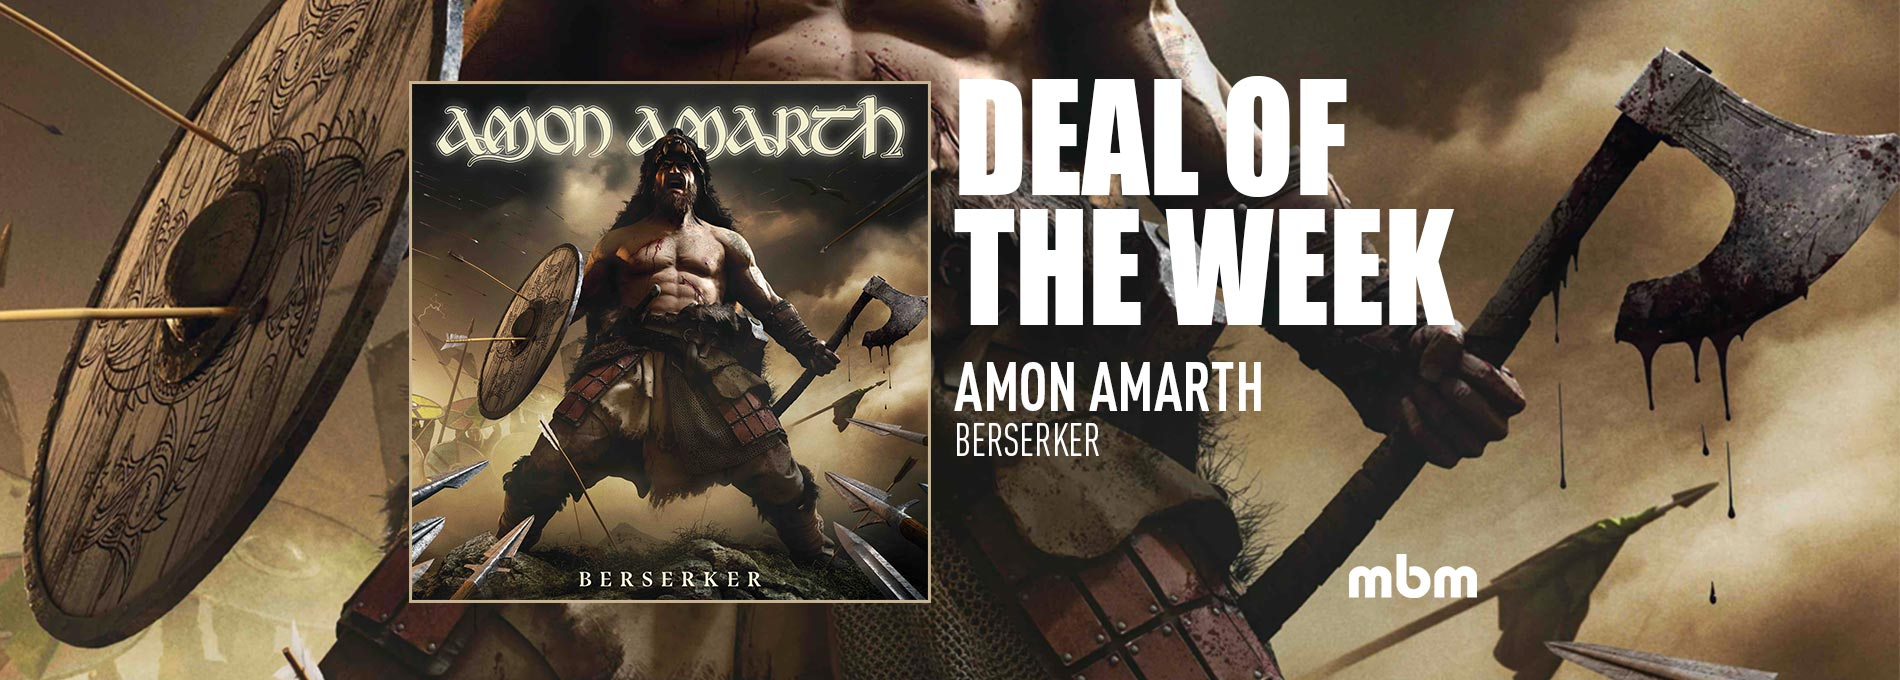 Deal Of The Week: AMON AMARTH - Berserker